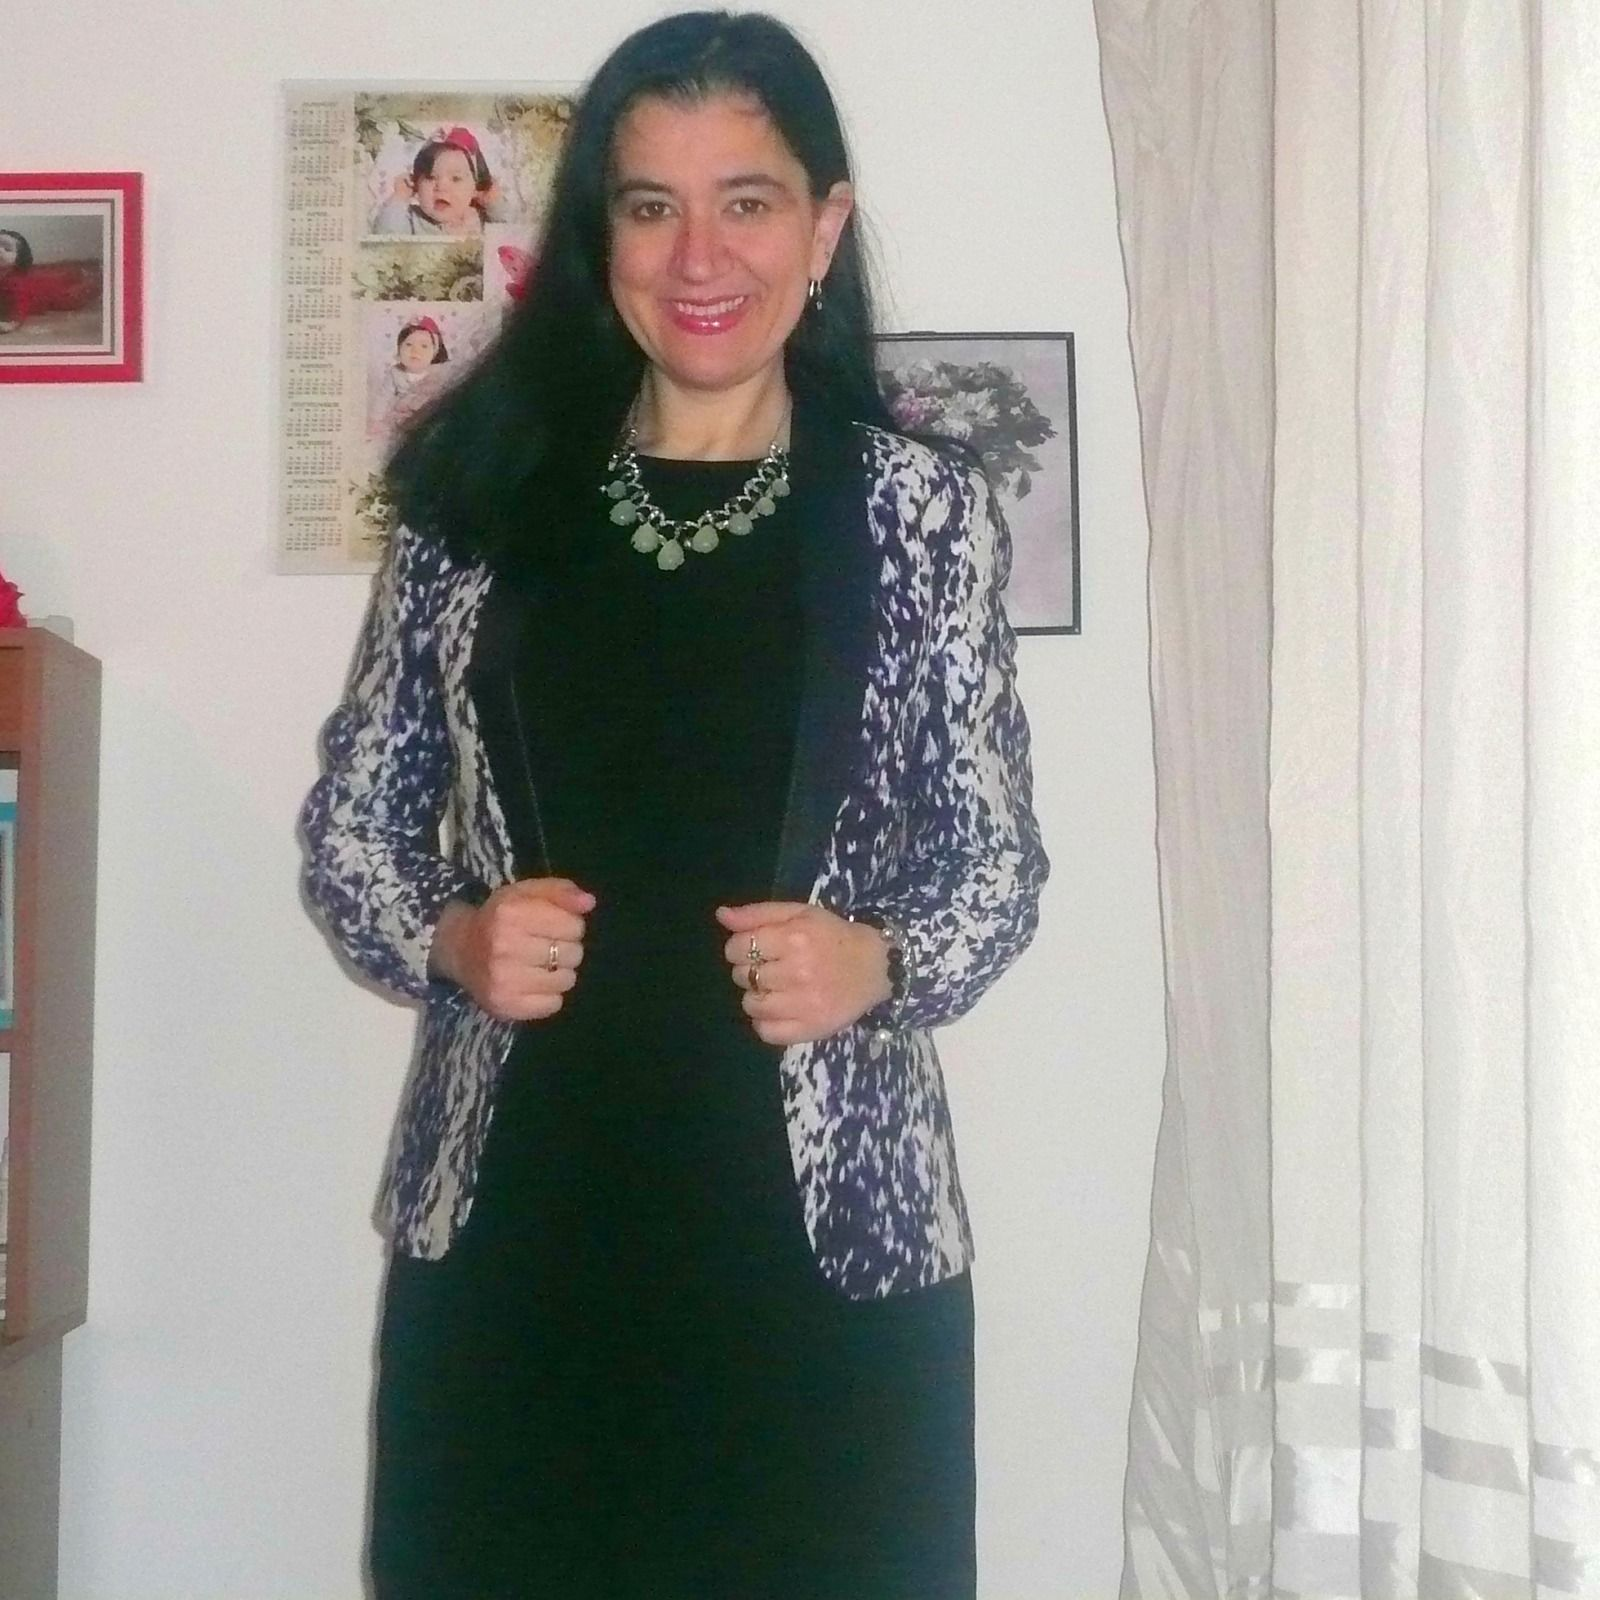 Elegance and Mommyhood.: LBD, Watercolors and a Statement Necklace.